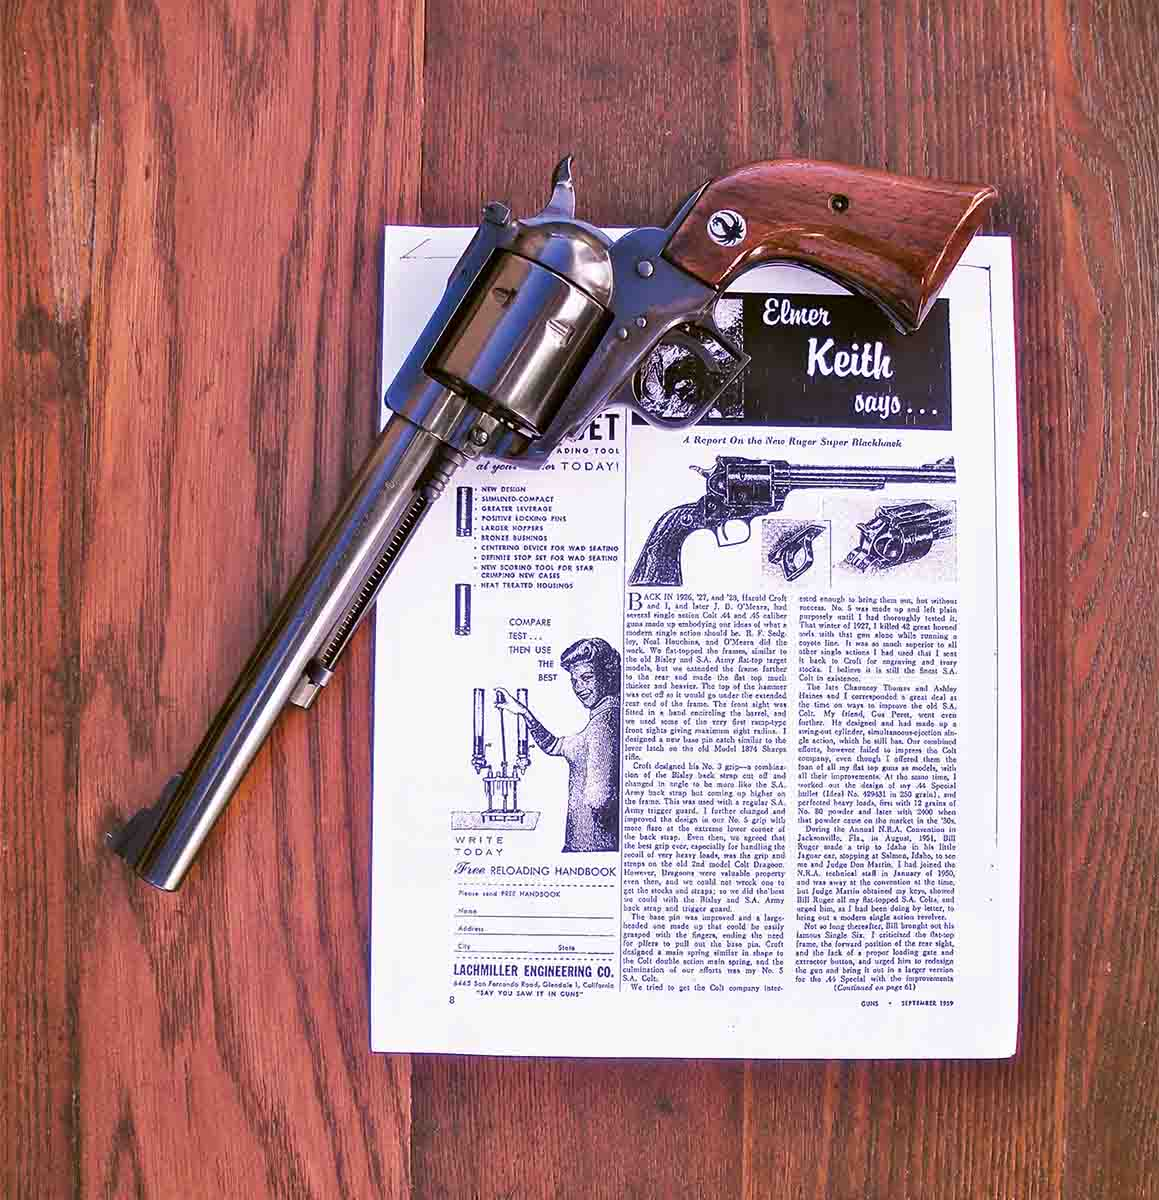 Elmer Keith reviewed the new Ruger Super Blackhawk .44 Magnum in the September 1959 issue of GUNS magazine, but did not mention bears.